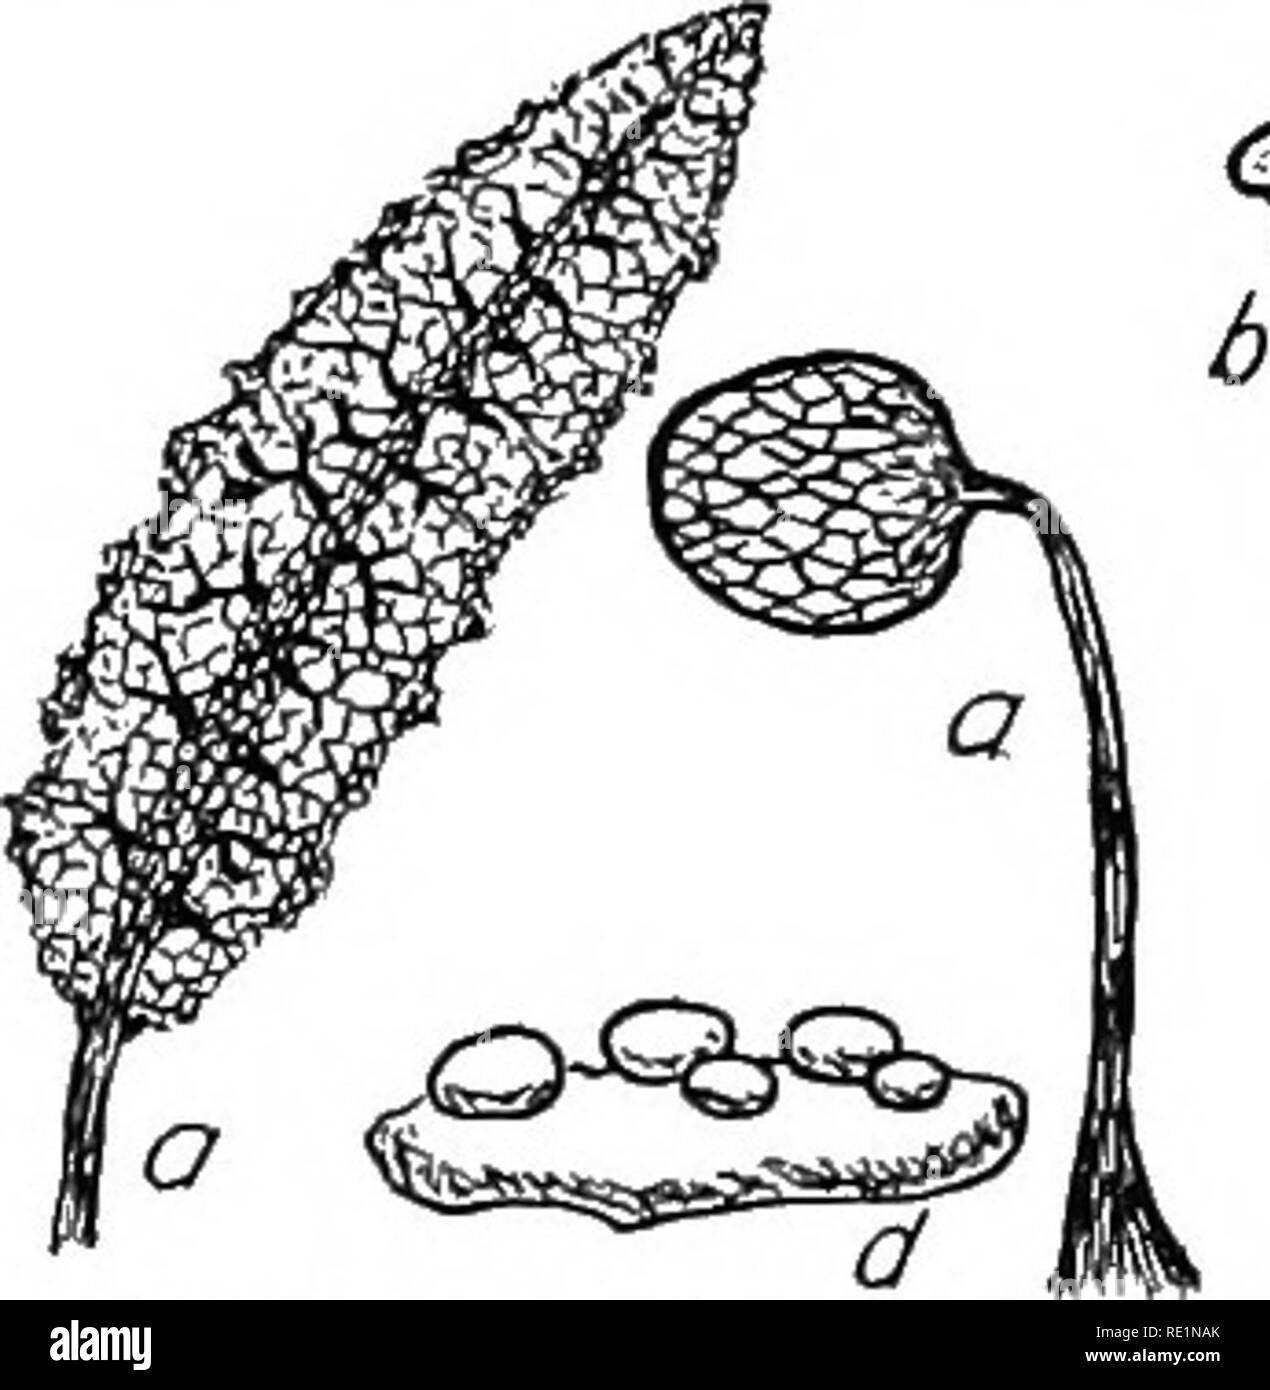 . College botany; structure, physiology and economics of plants. Botany. 274 COLLEGE BOTANY In rep'roduetion it forms stationary bodies of definite form which, resemble fungi. These structures are characteristic of the different species and are known as sporangia. They bear the spores which under favorable conditions of warmth and moisture give rise to ciliate, tmieellular, animal-like cells which fuse and form a new multinuclear plasmodium. Most of the species belonging to this division are sapTO- phytic, but some few are the causes of diseases of other plants. The club root of the cabbage, a - Stock Image